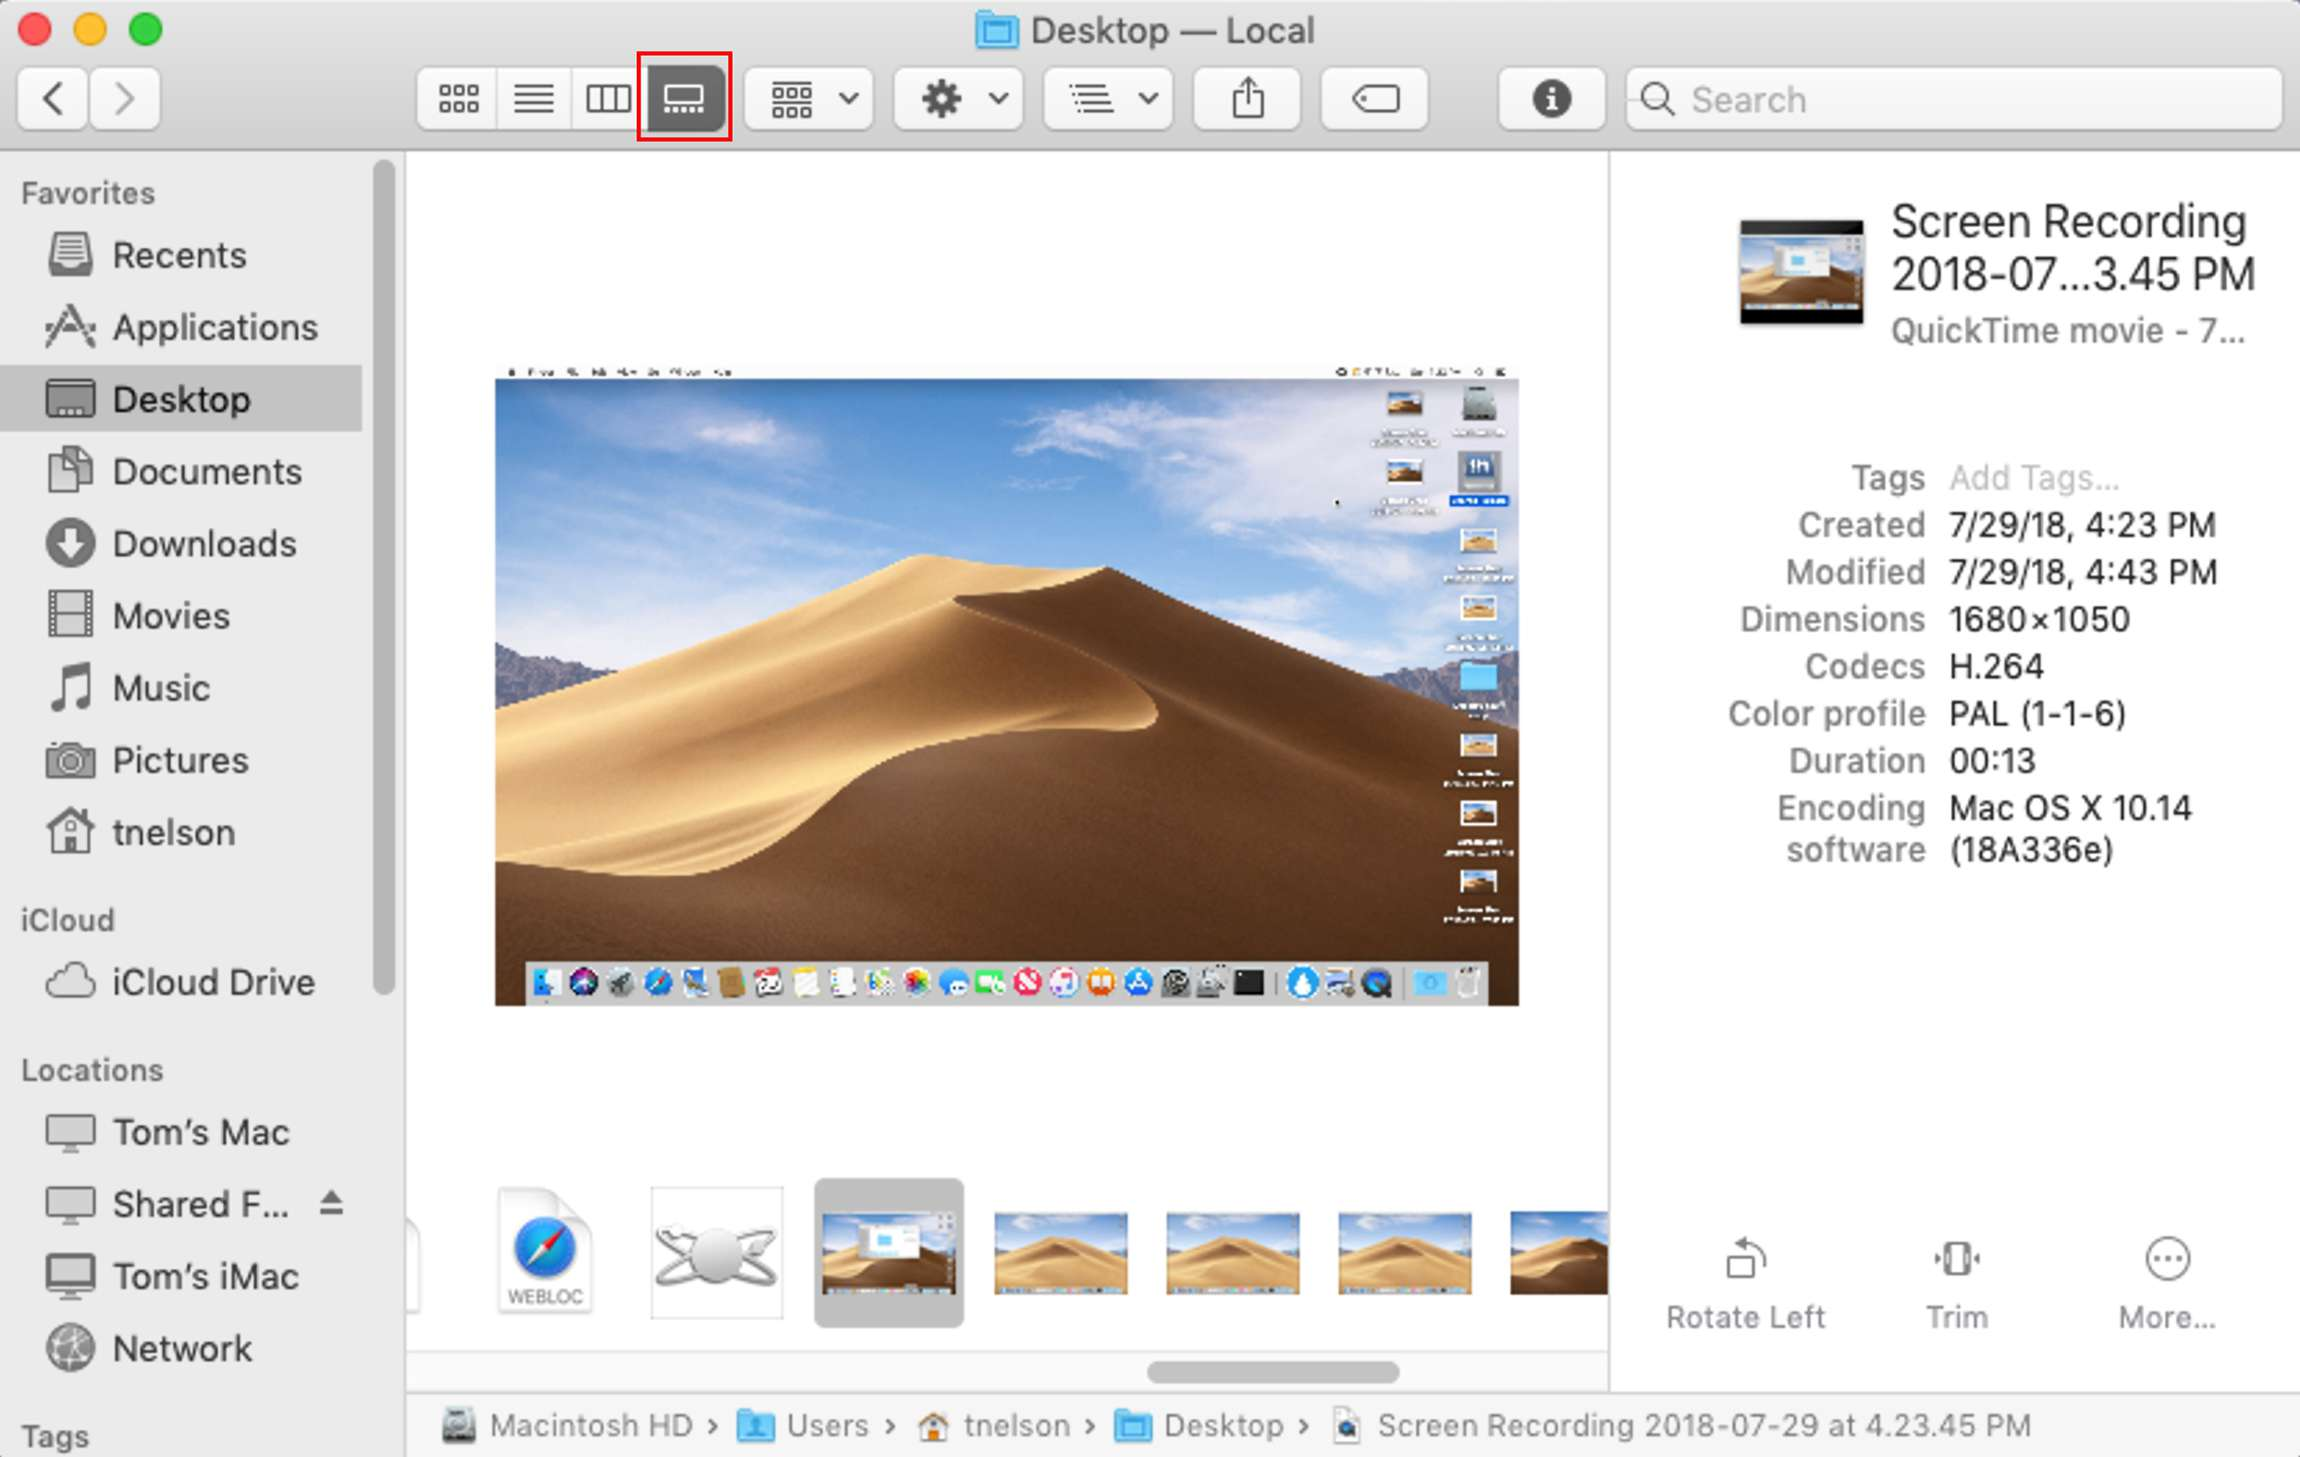 Gallery View in macOS Mojave.